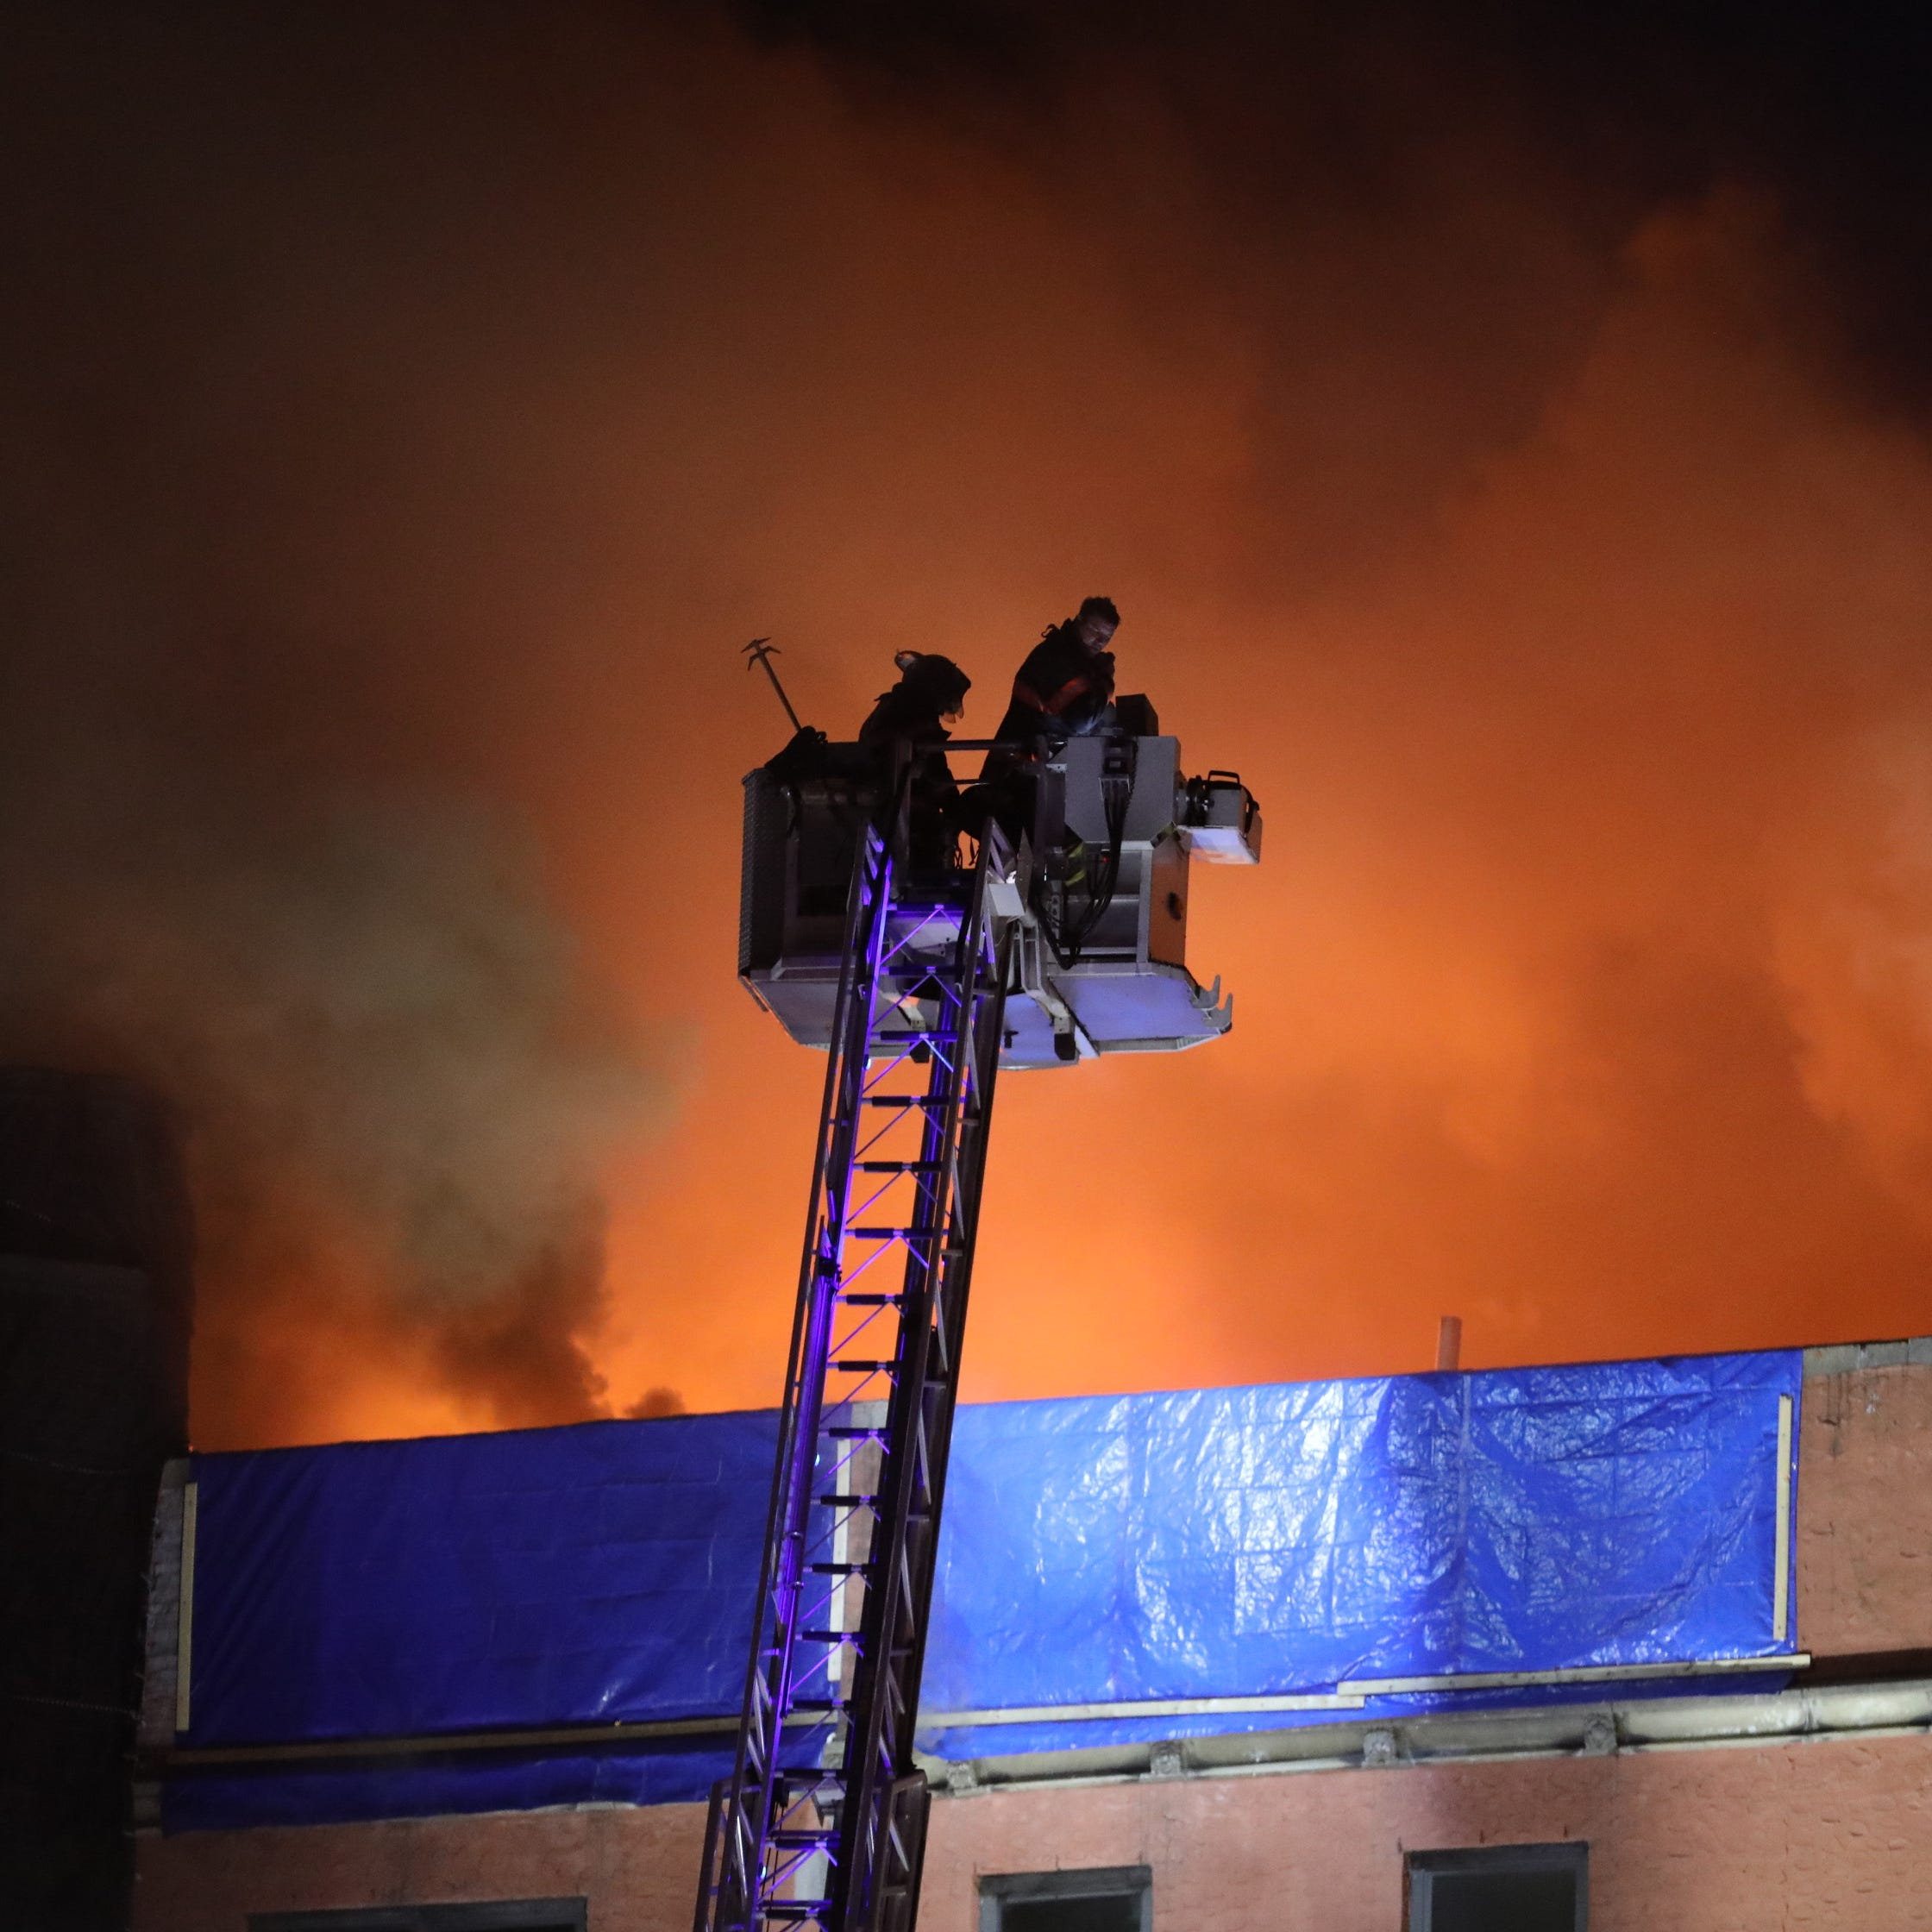 Firefighters battle general-alarm blaze near Yonkers-Bronxville border, estimated 150 displaced